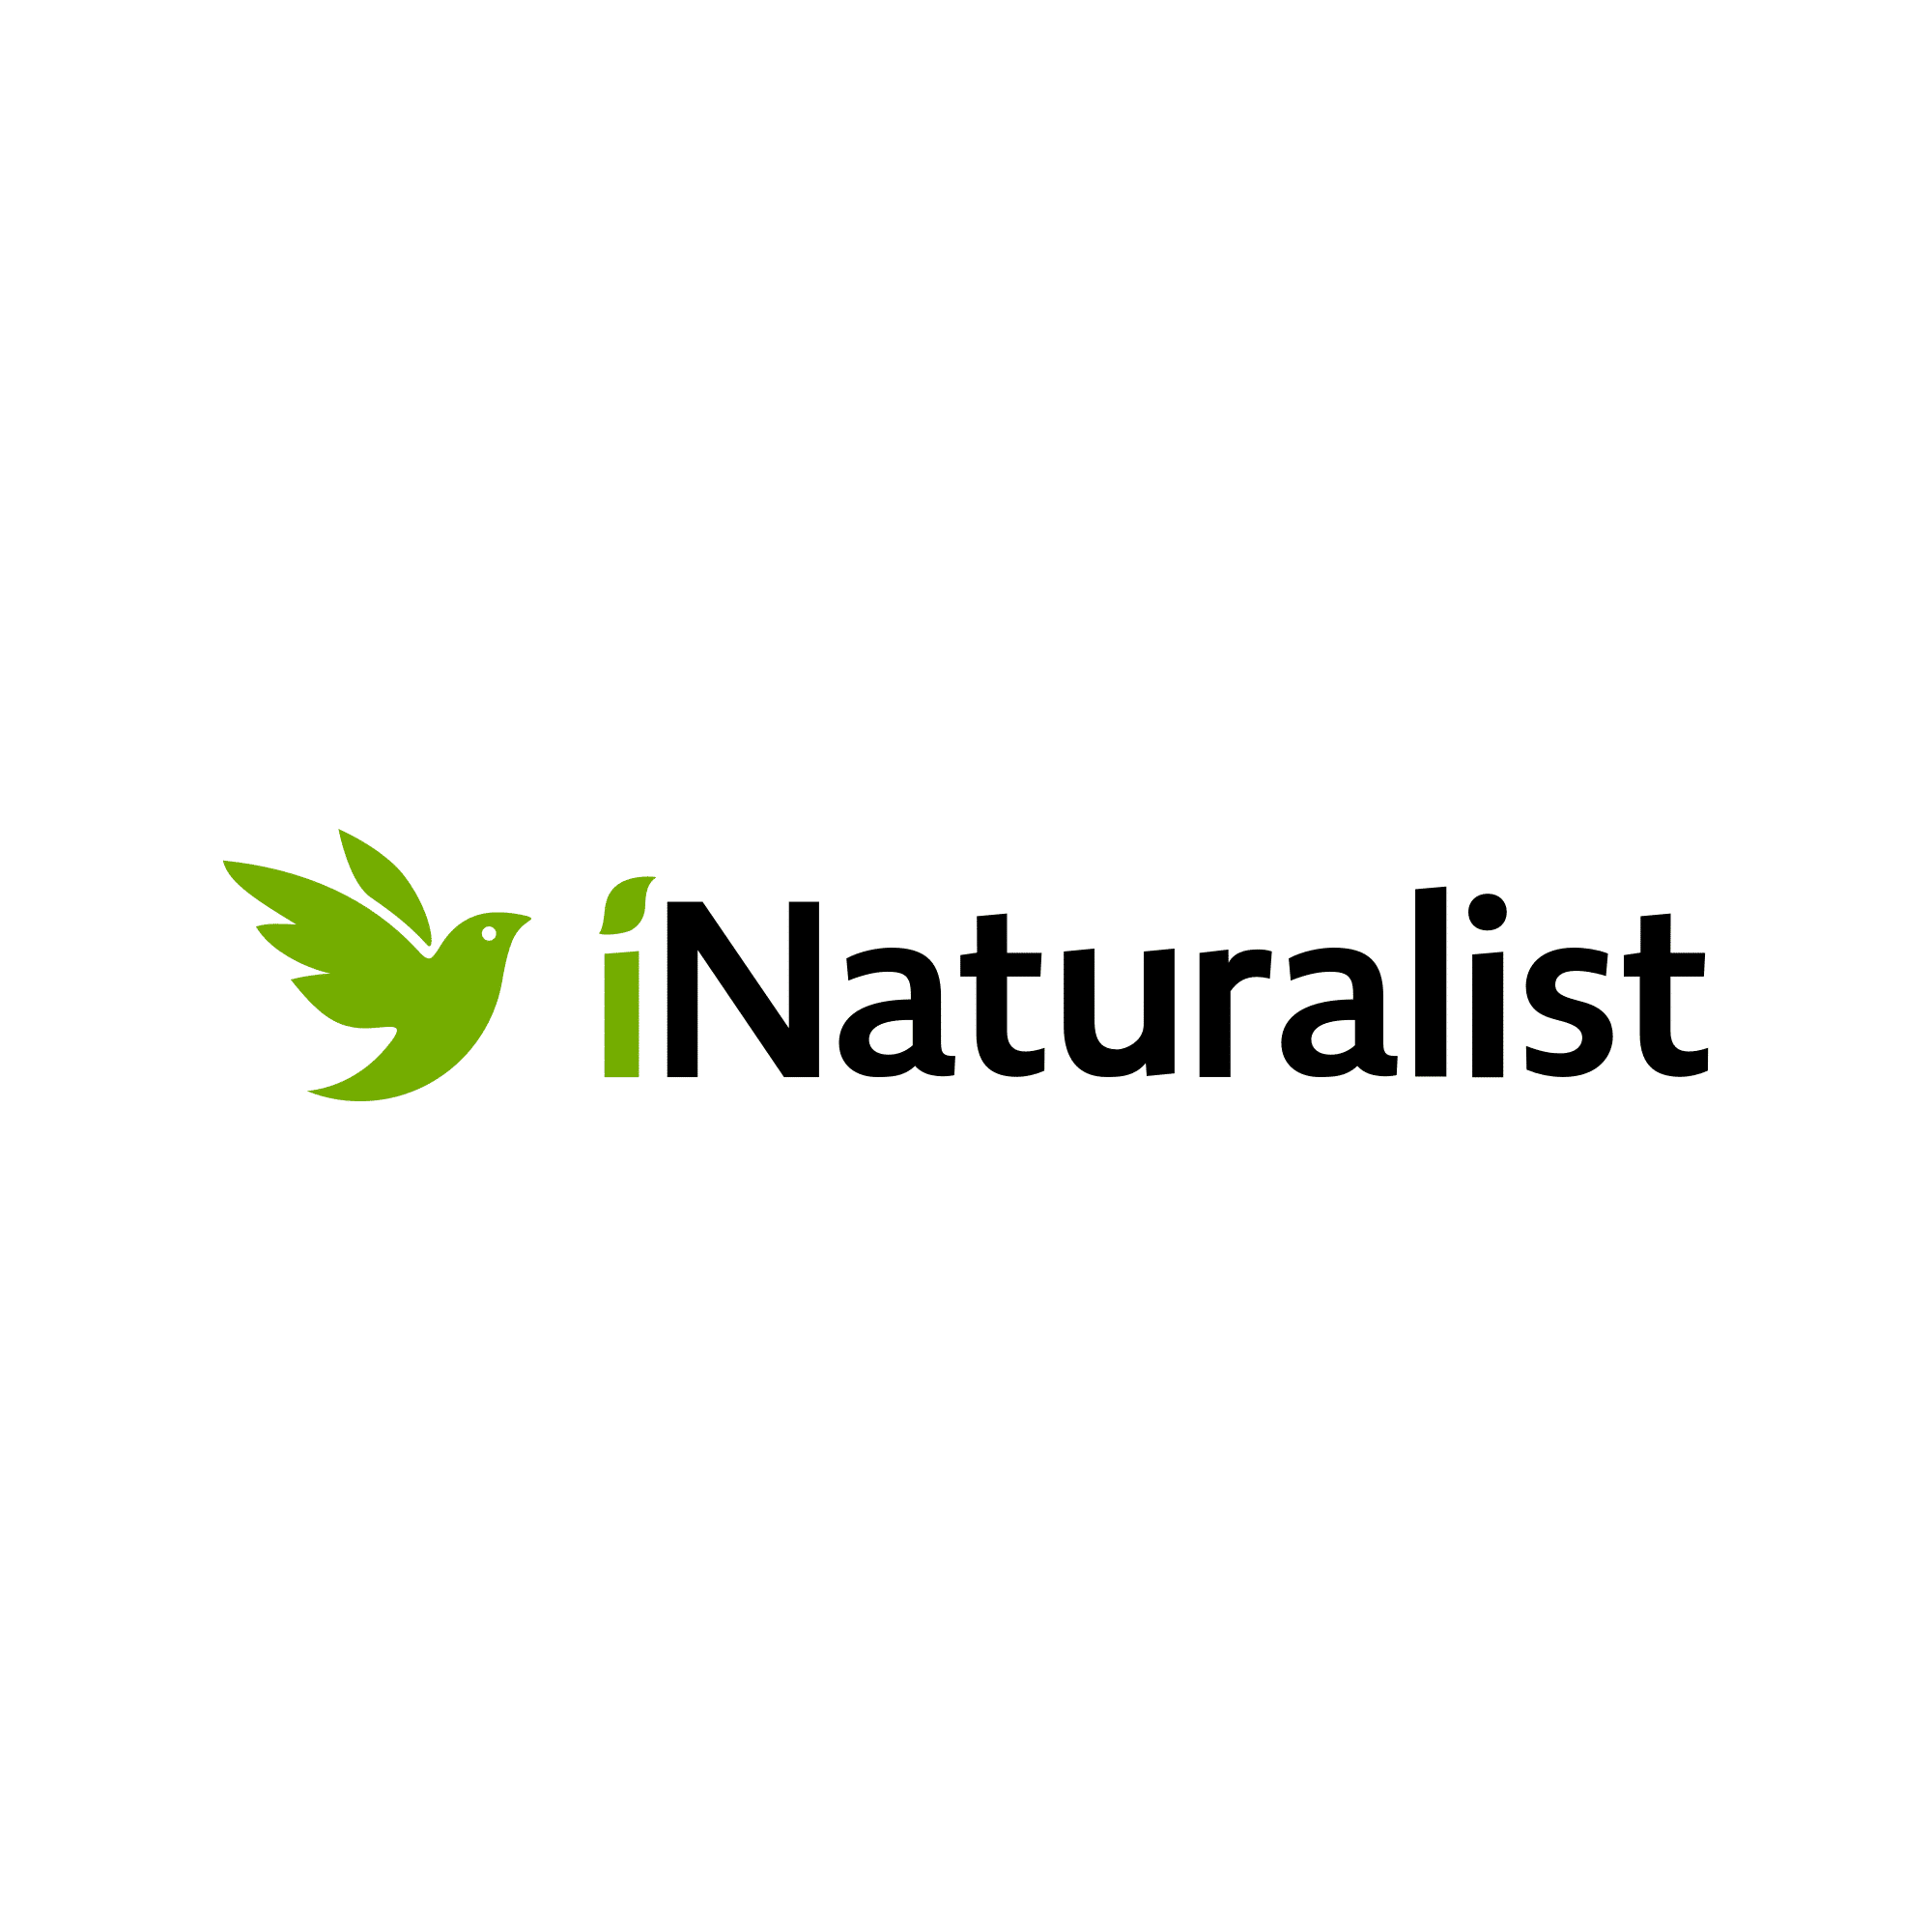 Making iNaturalist work for you